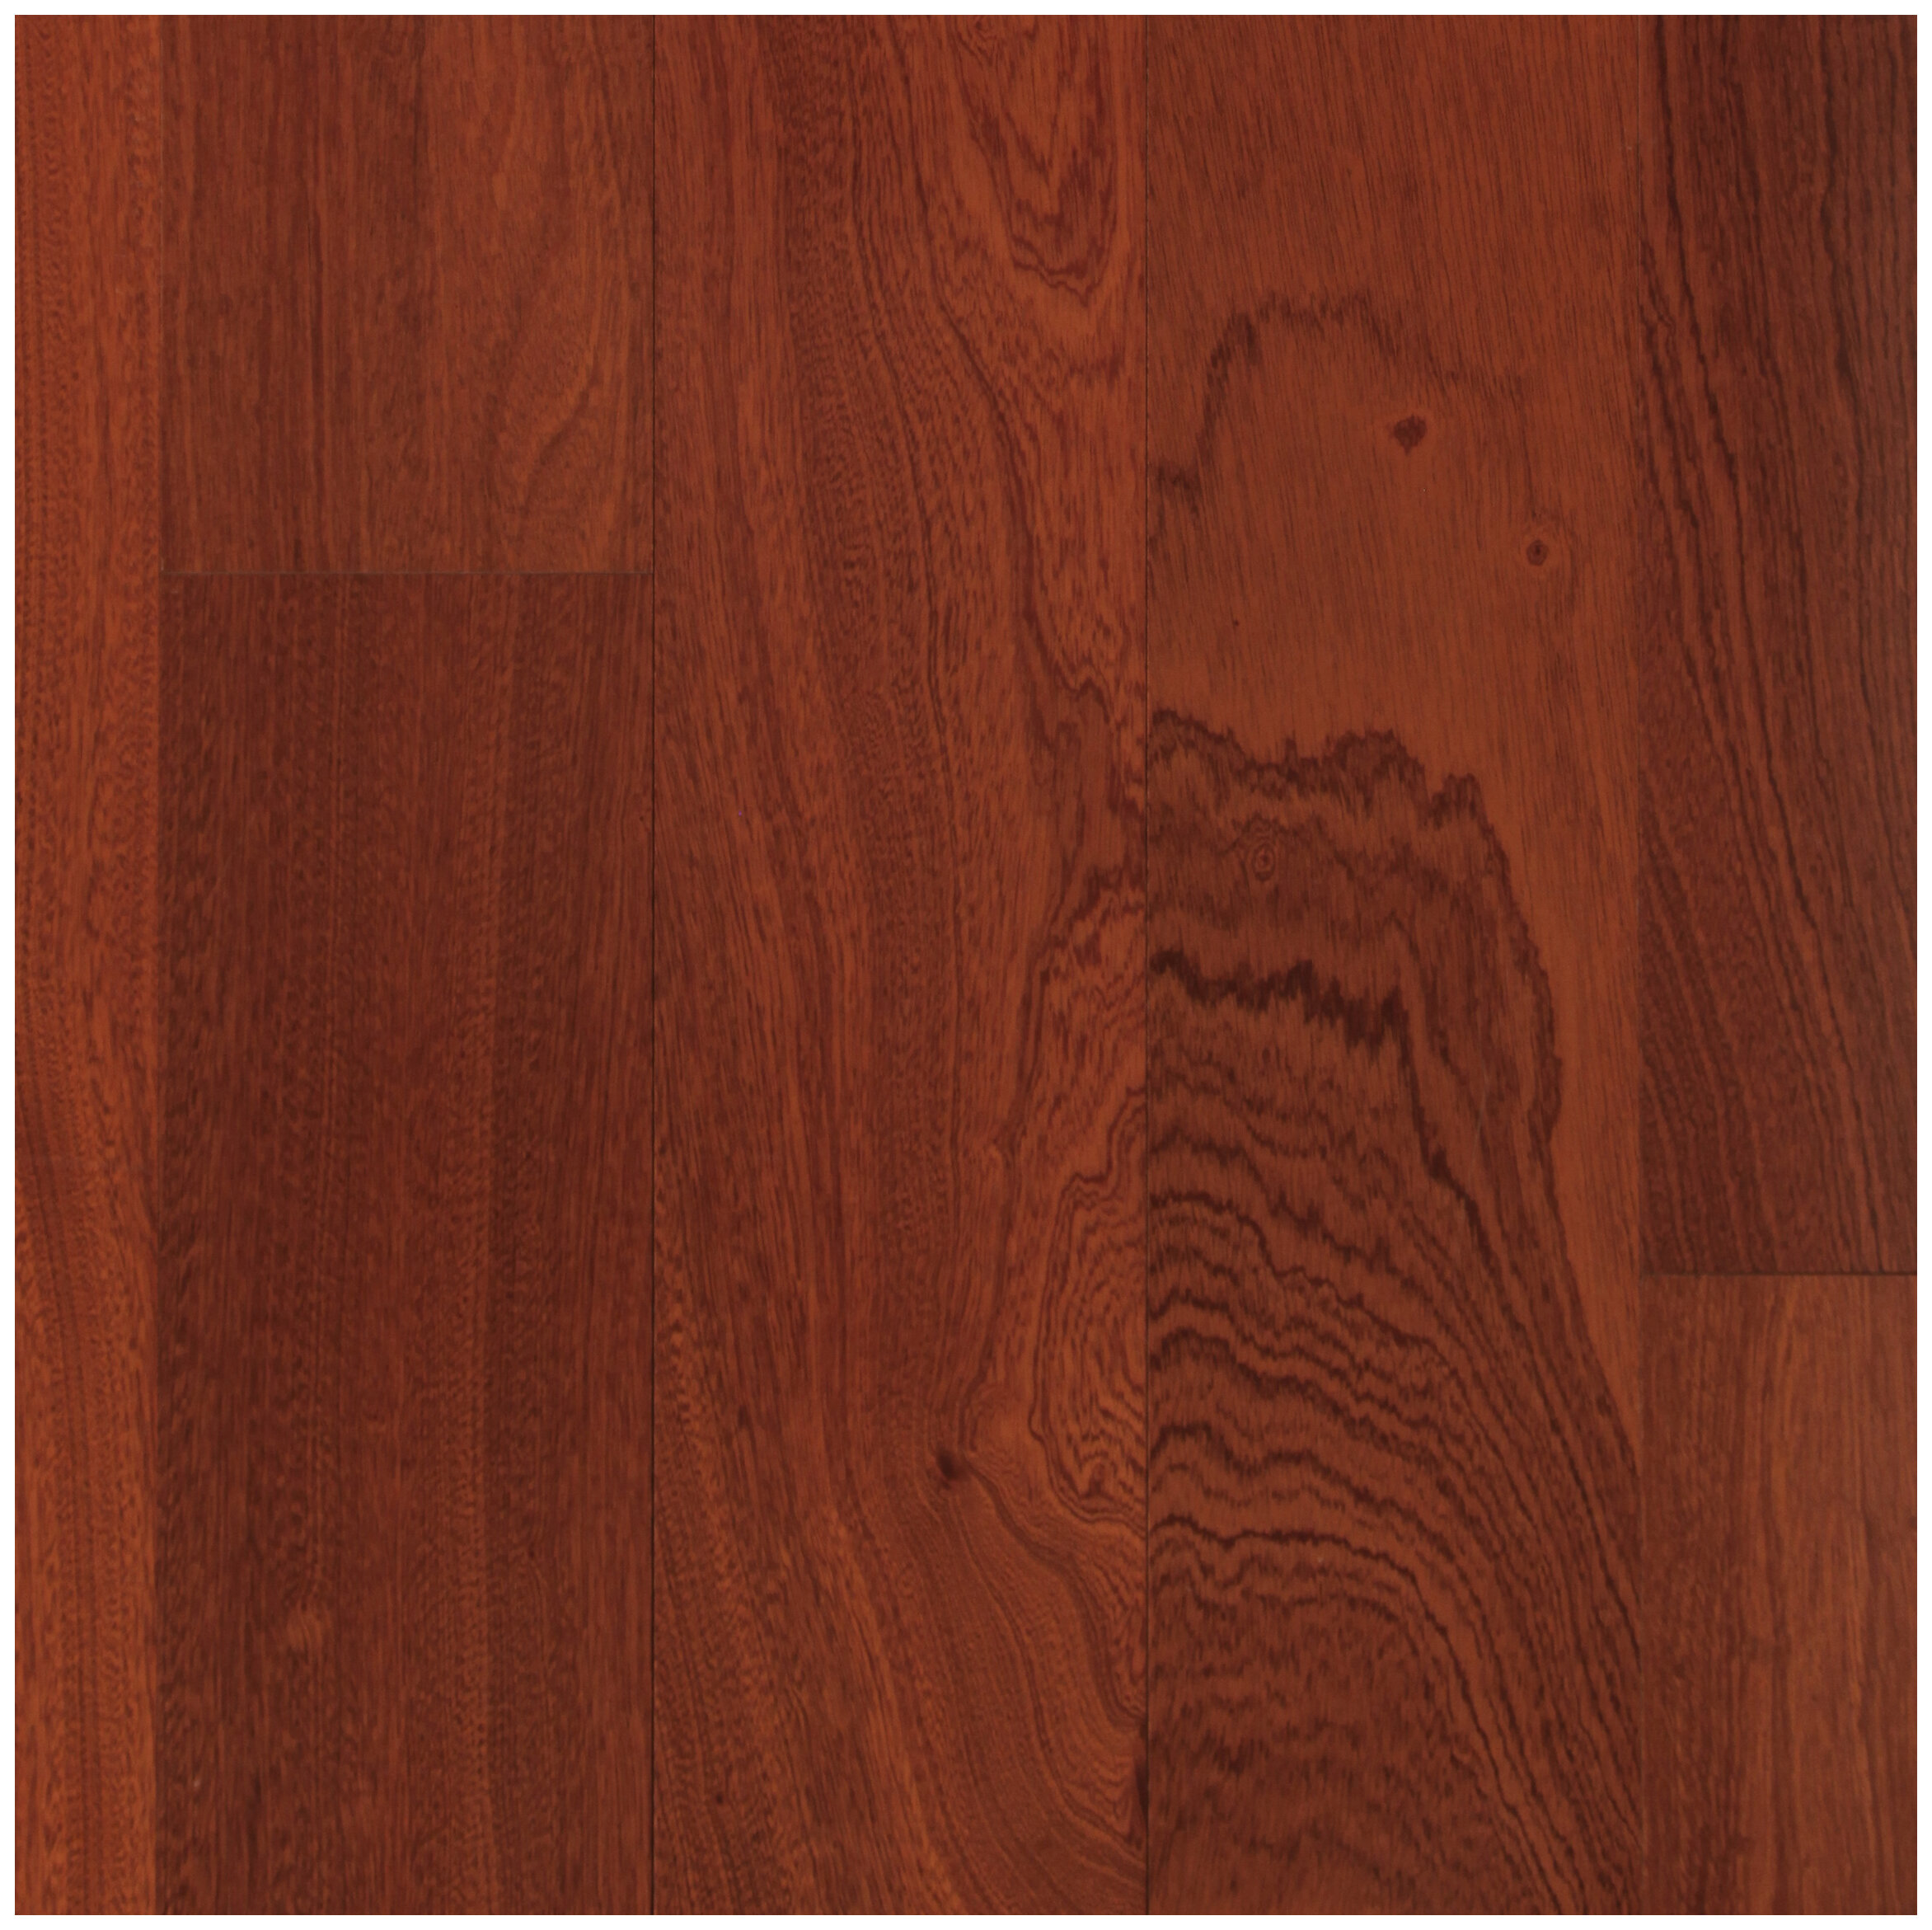 Easoon Usa African Heritage Sapele 1 2 Thick X 3 Wide X Varying